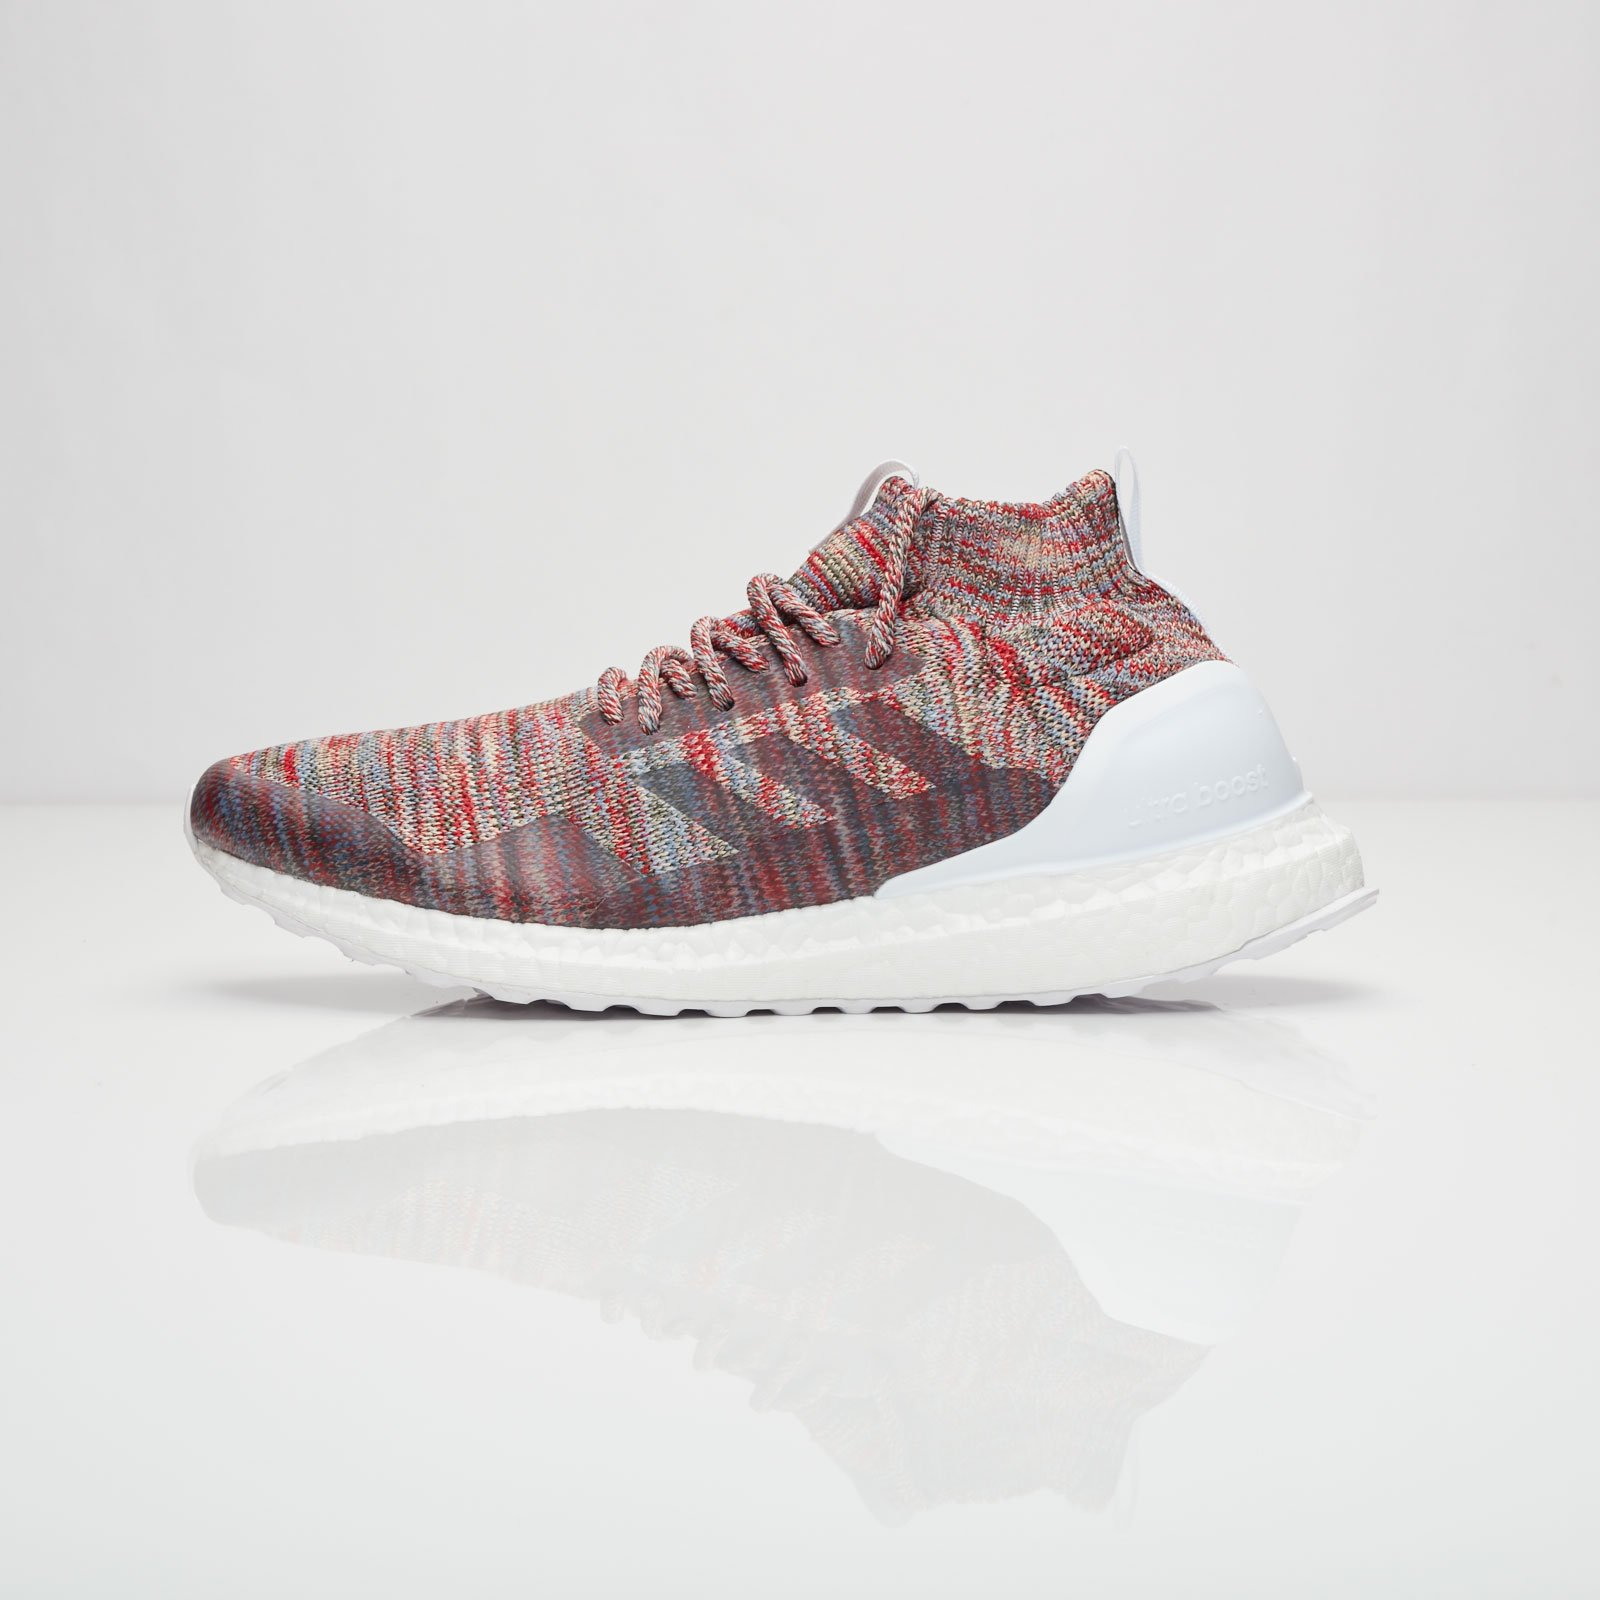 e4dc8ac7f65d6 adidas Kith Ultraboost Mid - By2592 - Sneakersnstuff